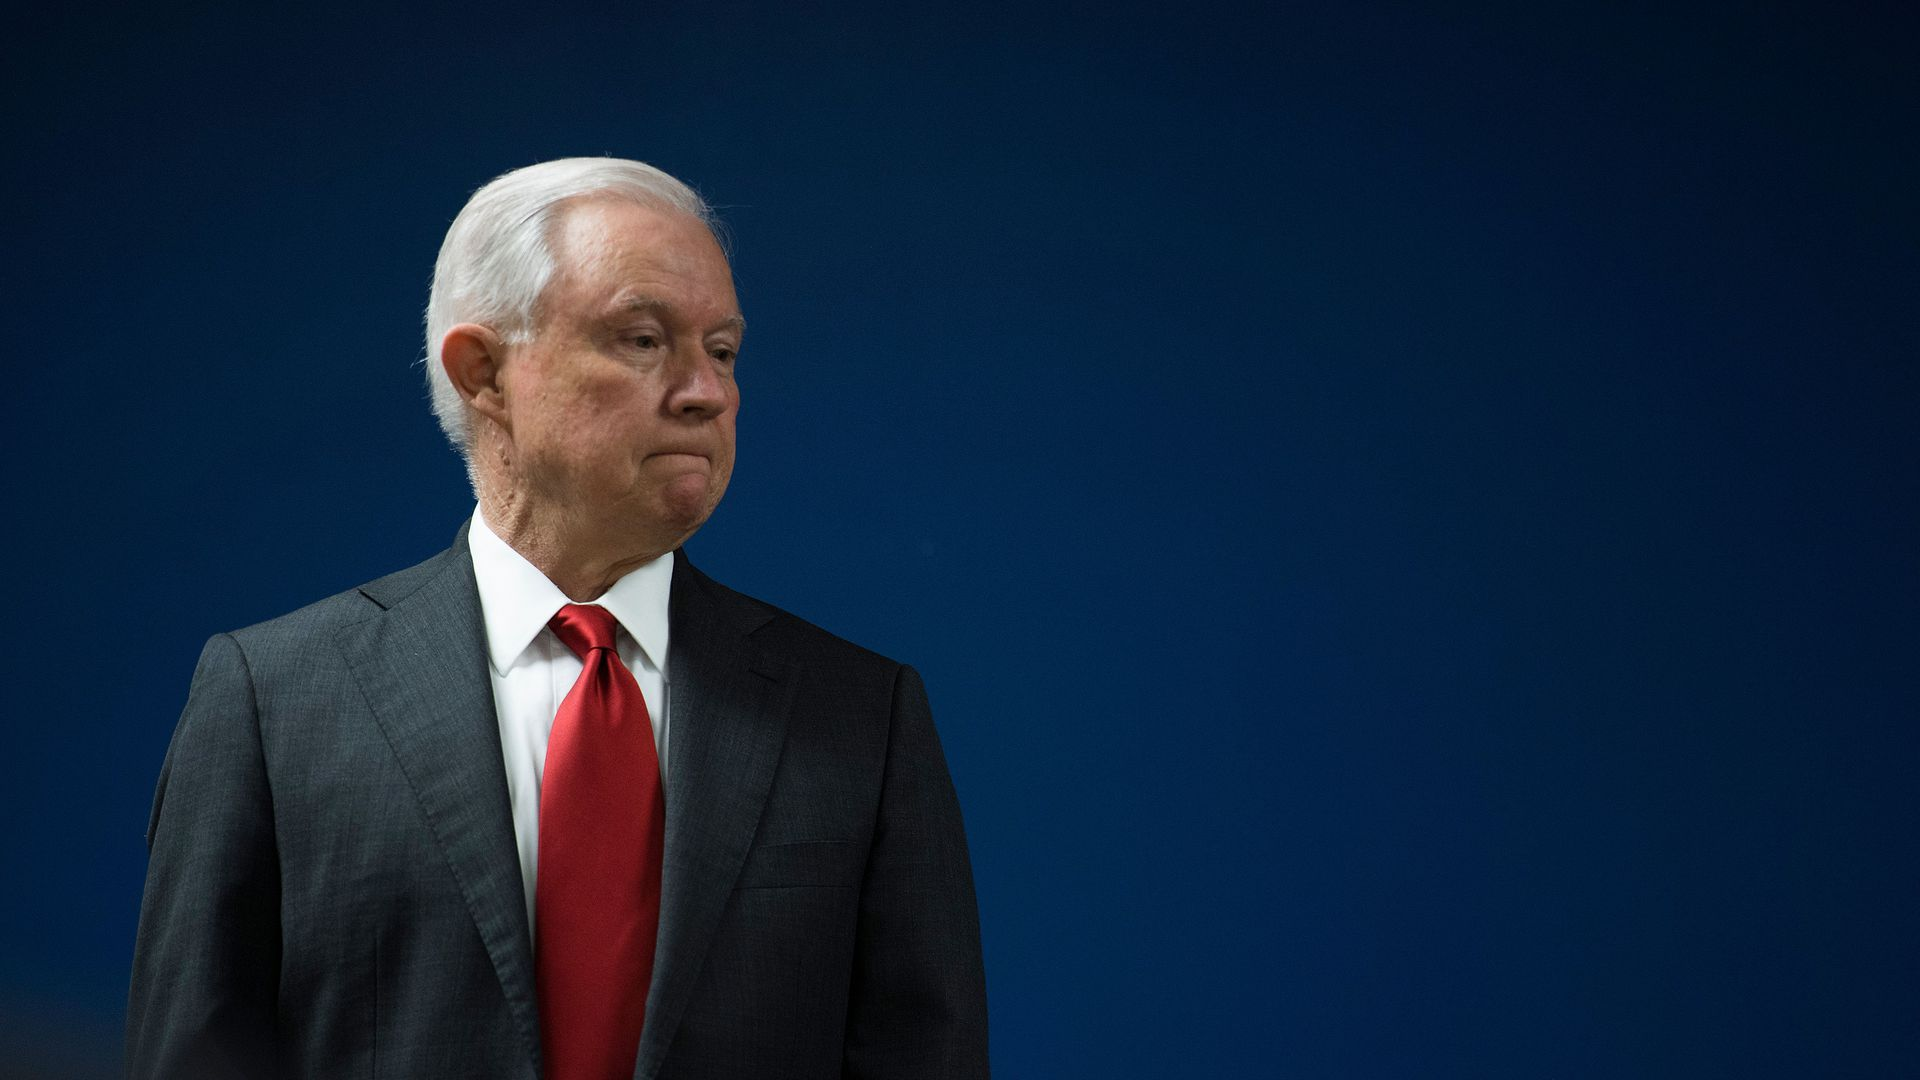 Jeff Sessions standing